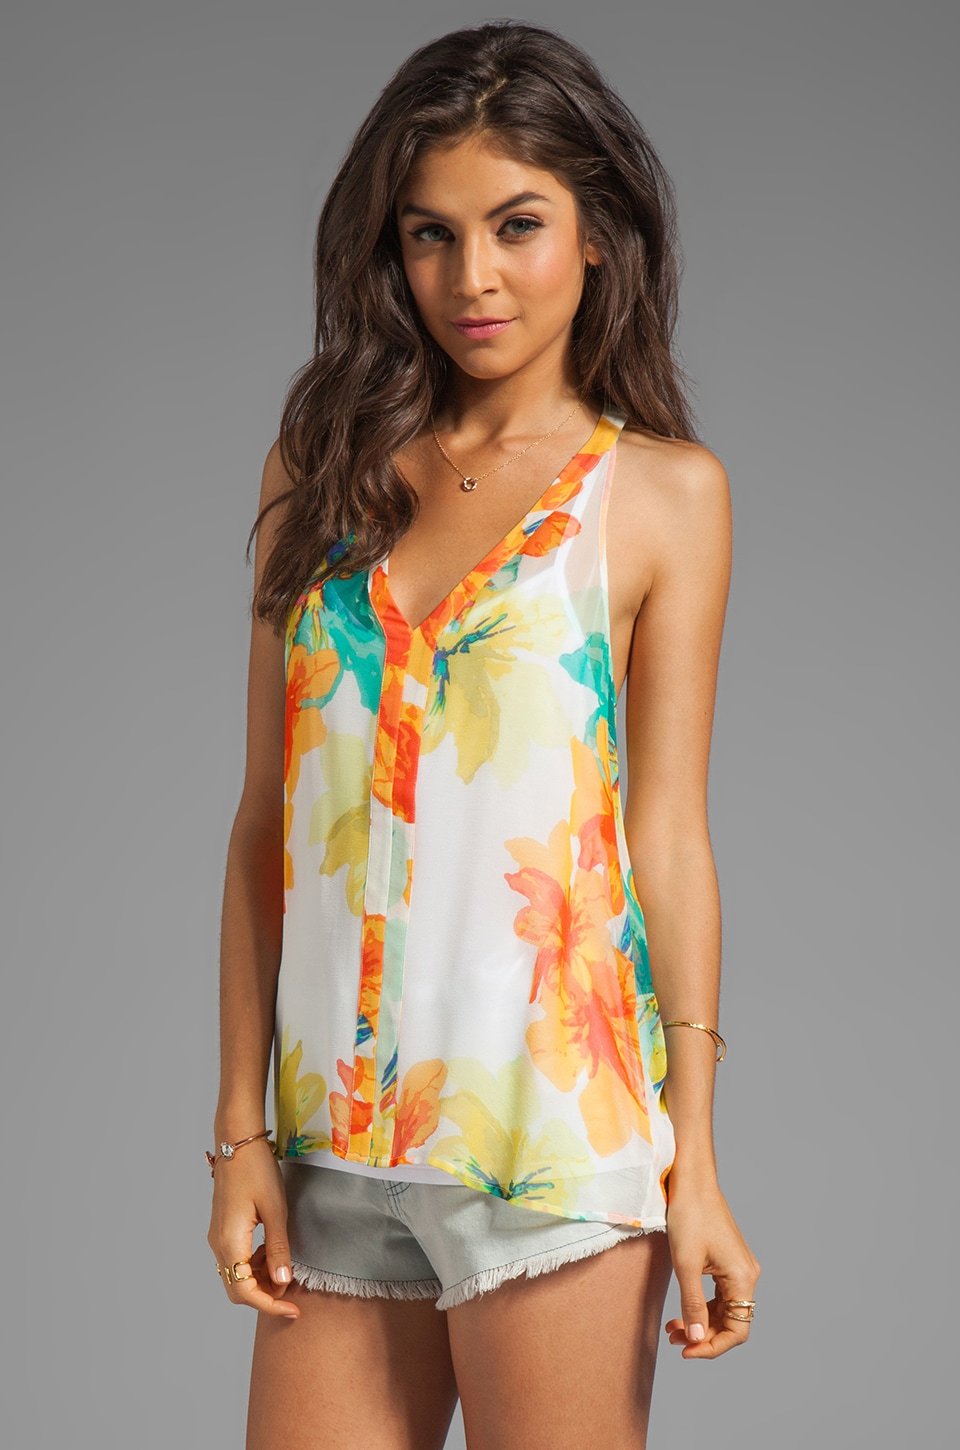 Ella Moss Hibiscus Floral Silk Tank in White